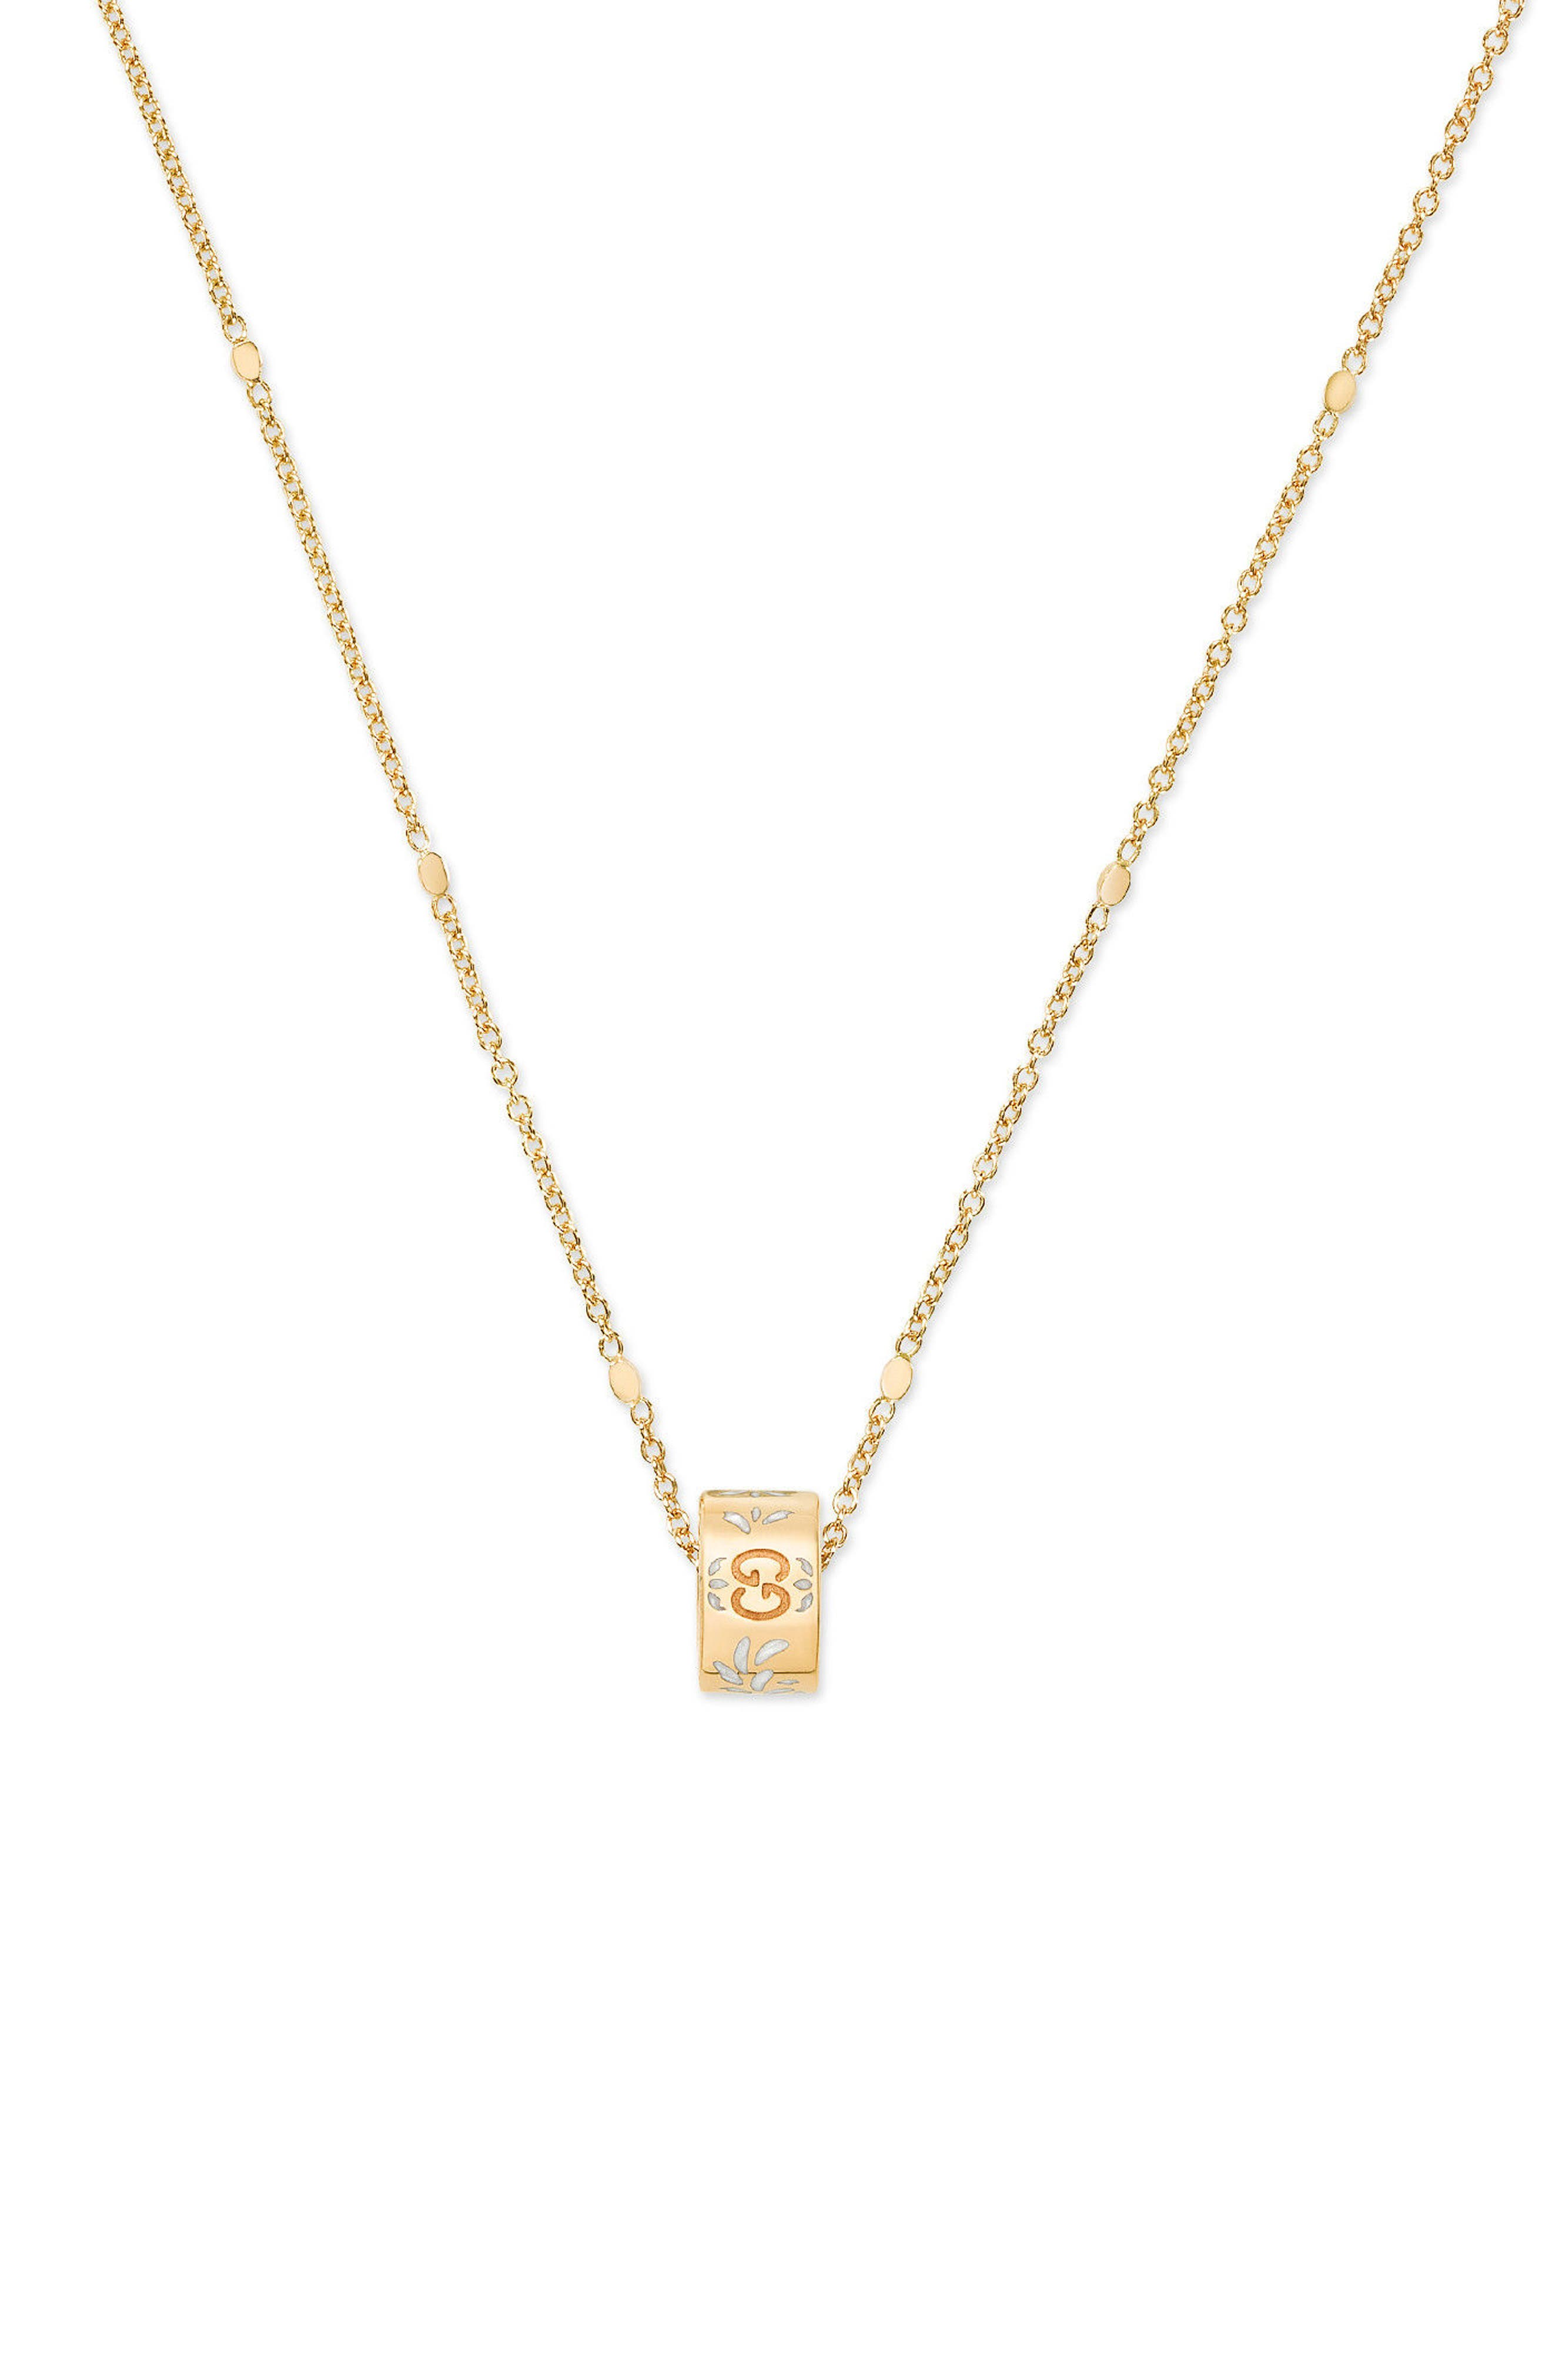 Icon Pendant Necklace,                             Main thumbnail 1, color,                             YELLOW GOLD